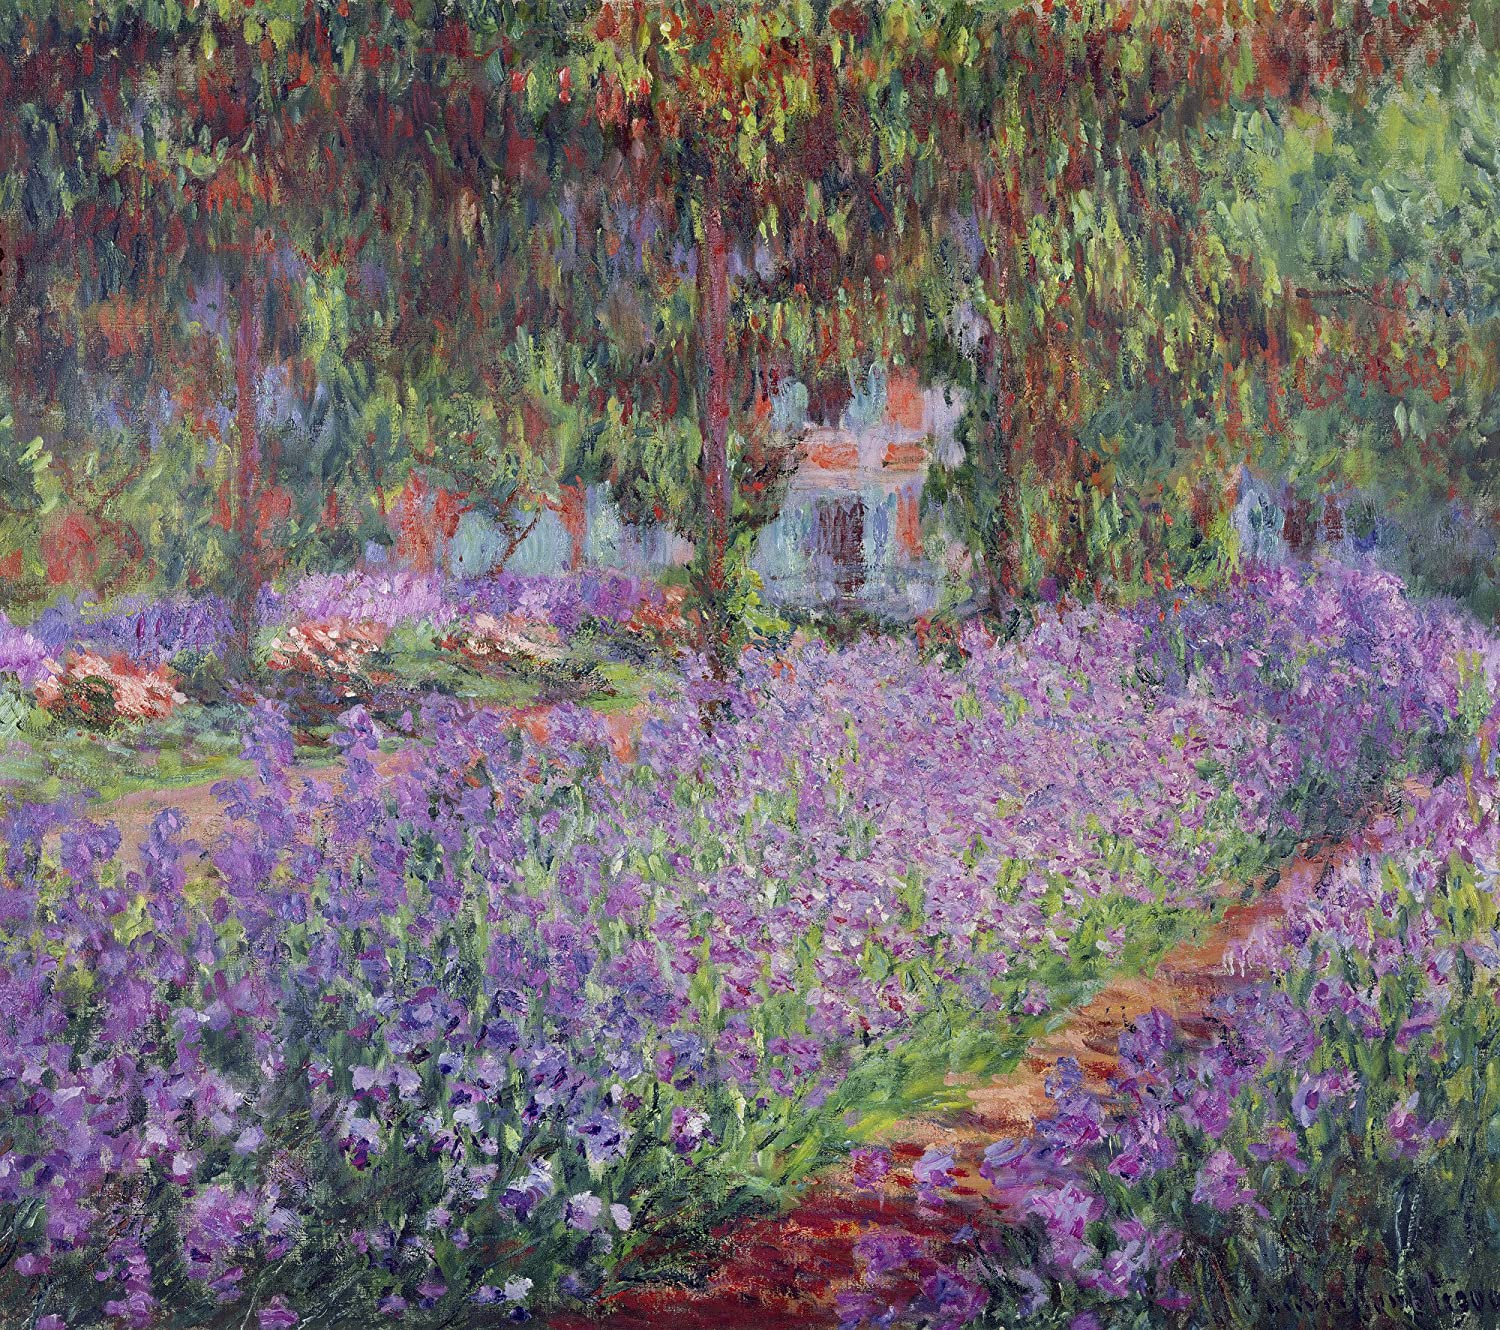 Monet - The Artists Garden at Giverny, Size 24x28 inch, Poster art print wall décor